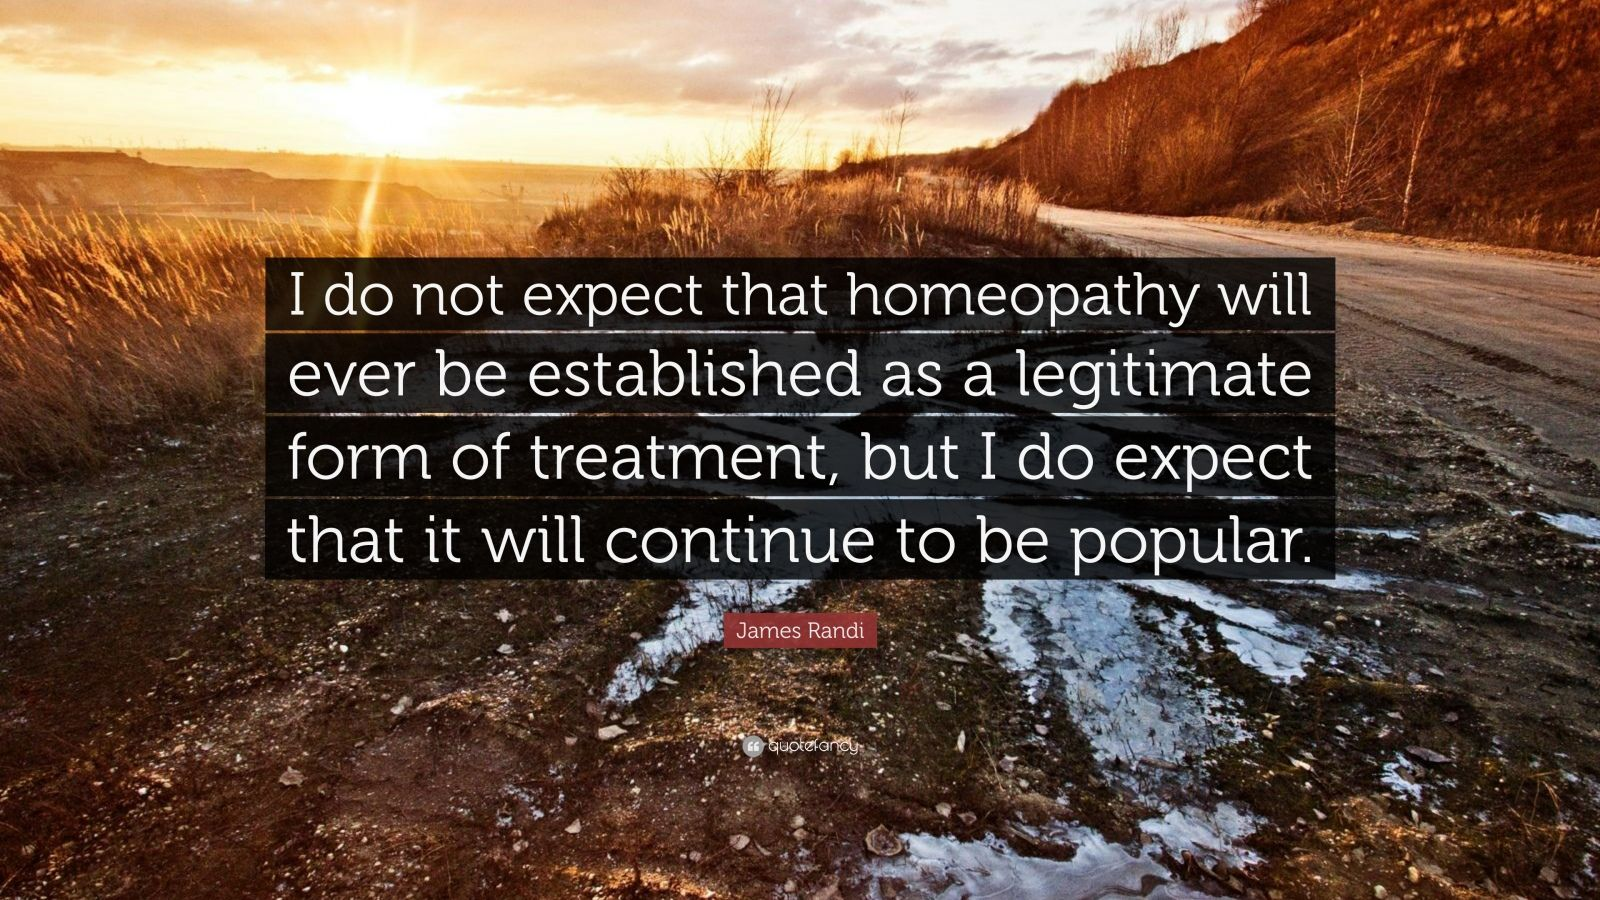 """James Randi Quote: """"I do not expect that homeopathy will ever be established as a legitimate form of treatment, but I do expect that it will continue to be popular."""""""